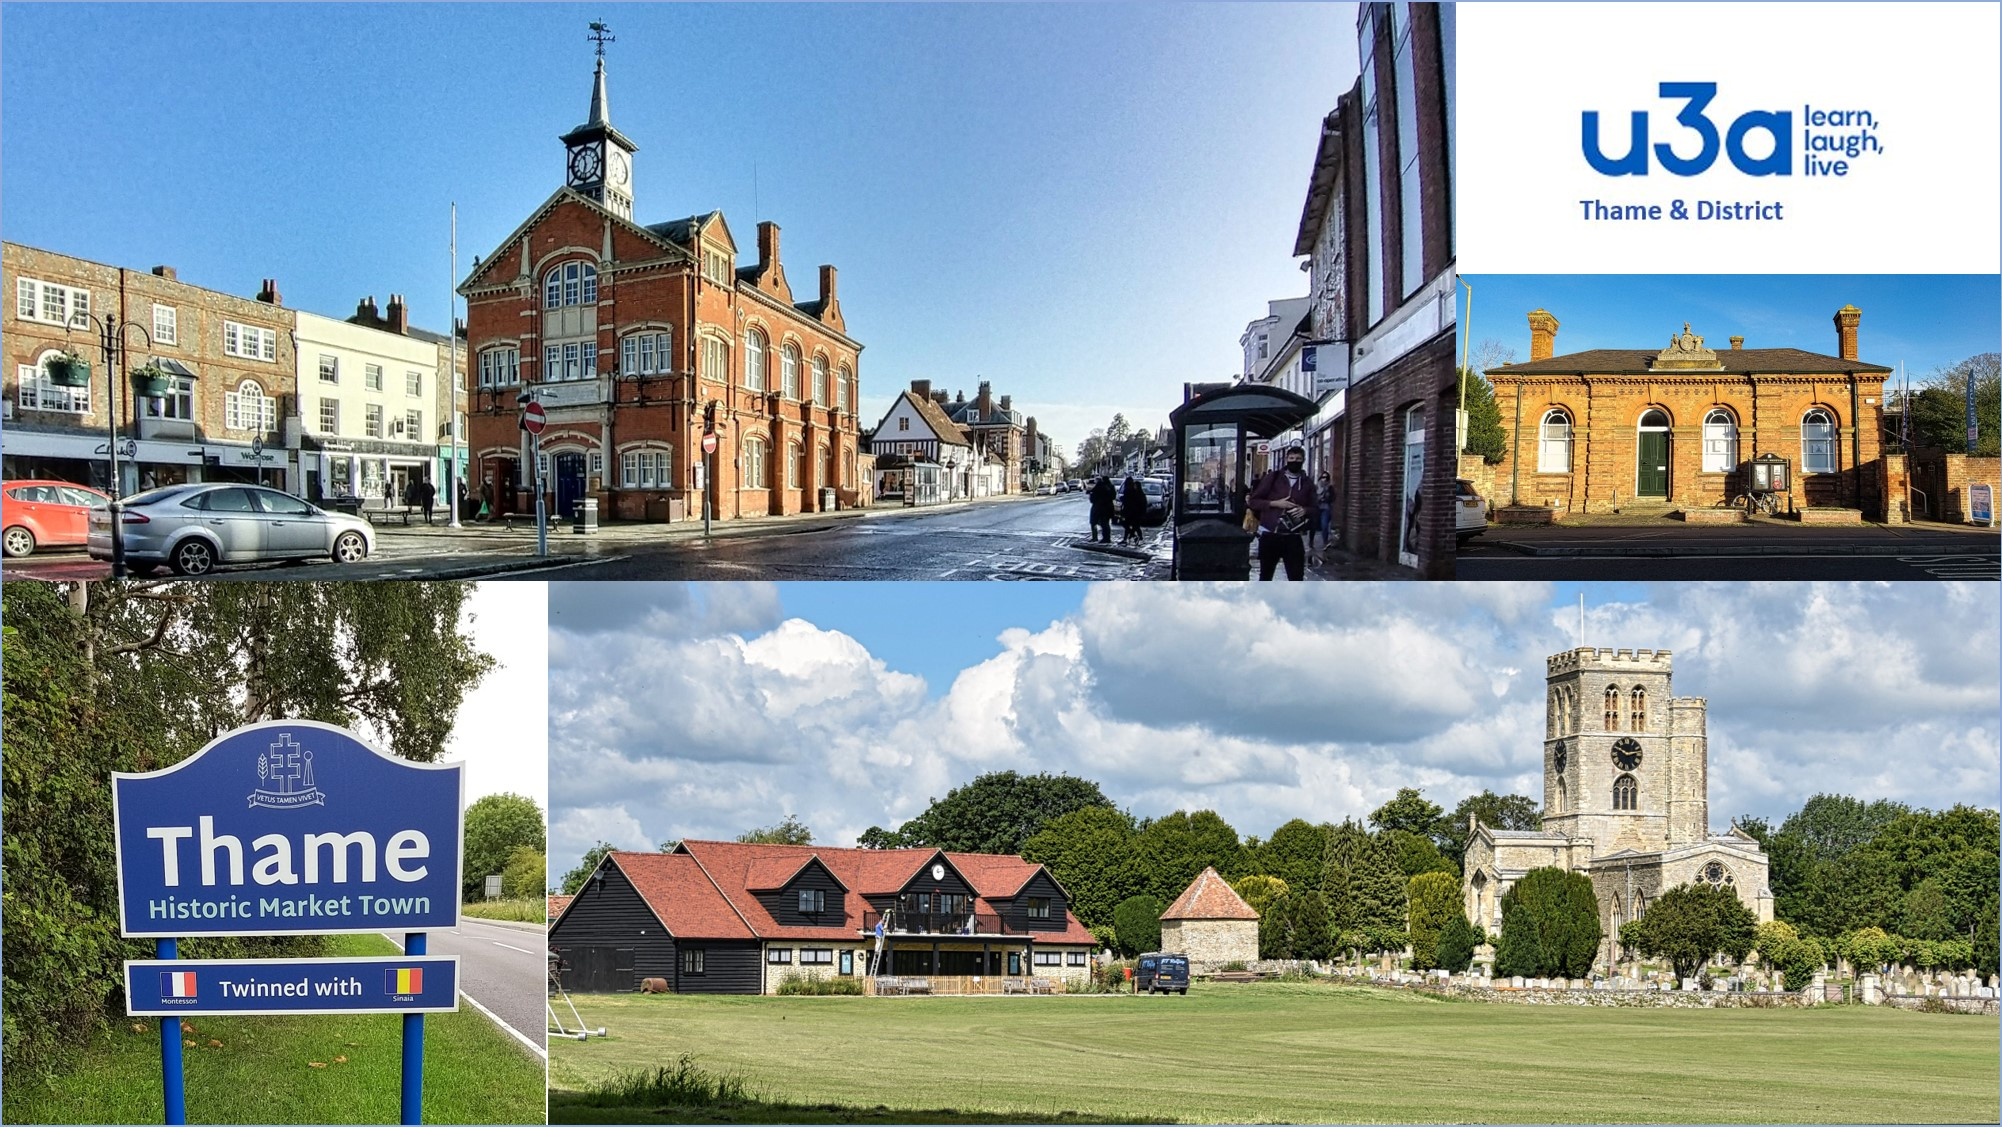 Pictures of Thame